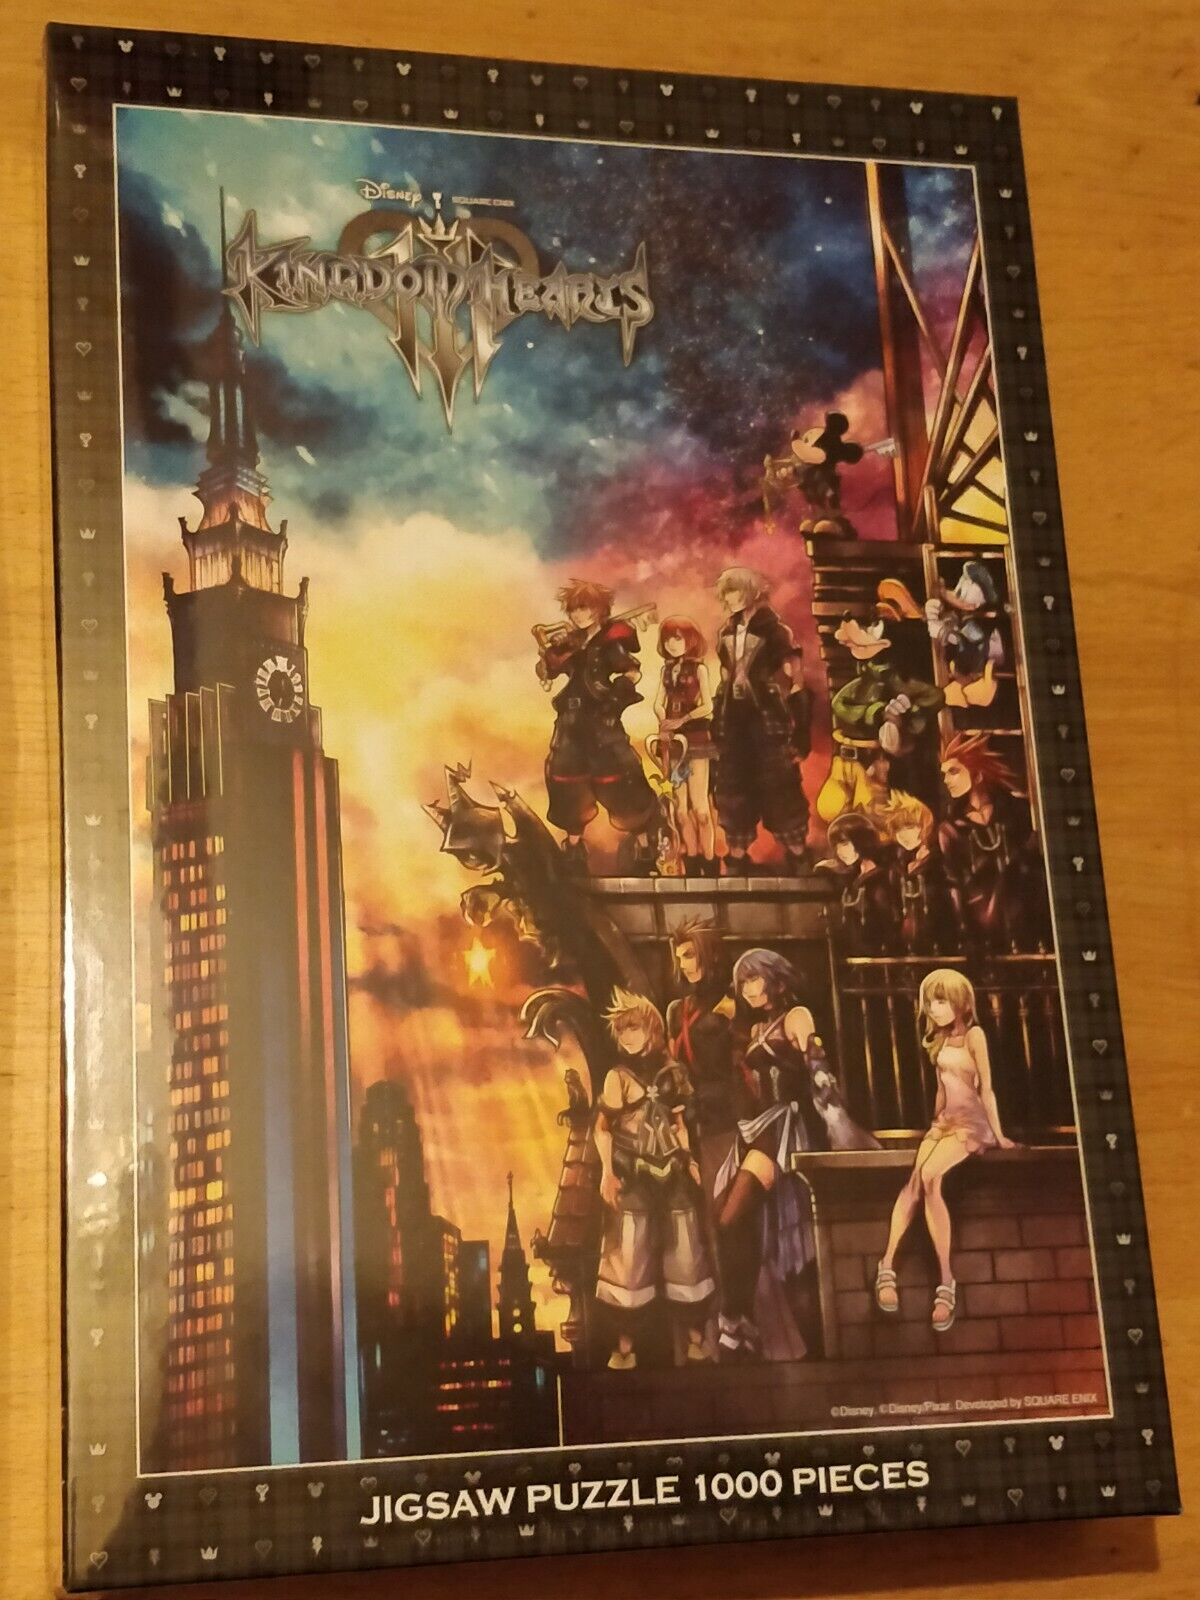 KINGDOM HEARTS III (3) 1000 PIECES JIGSAW PUZZLE - BRAND NEW & FACTORY SEALED